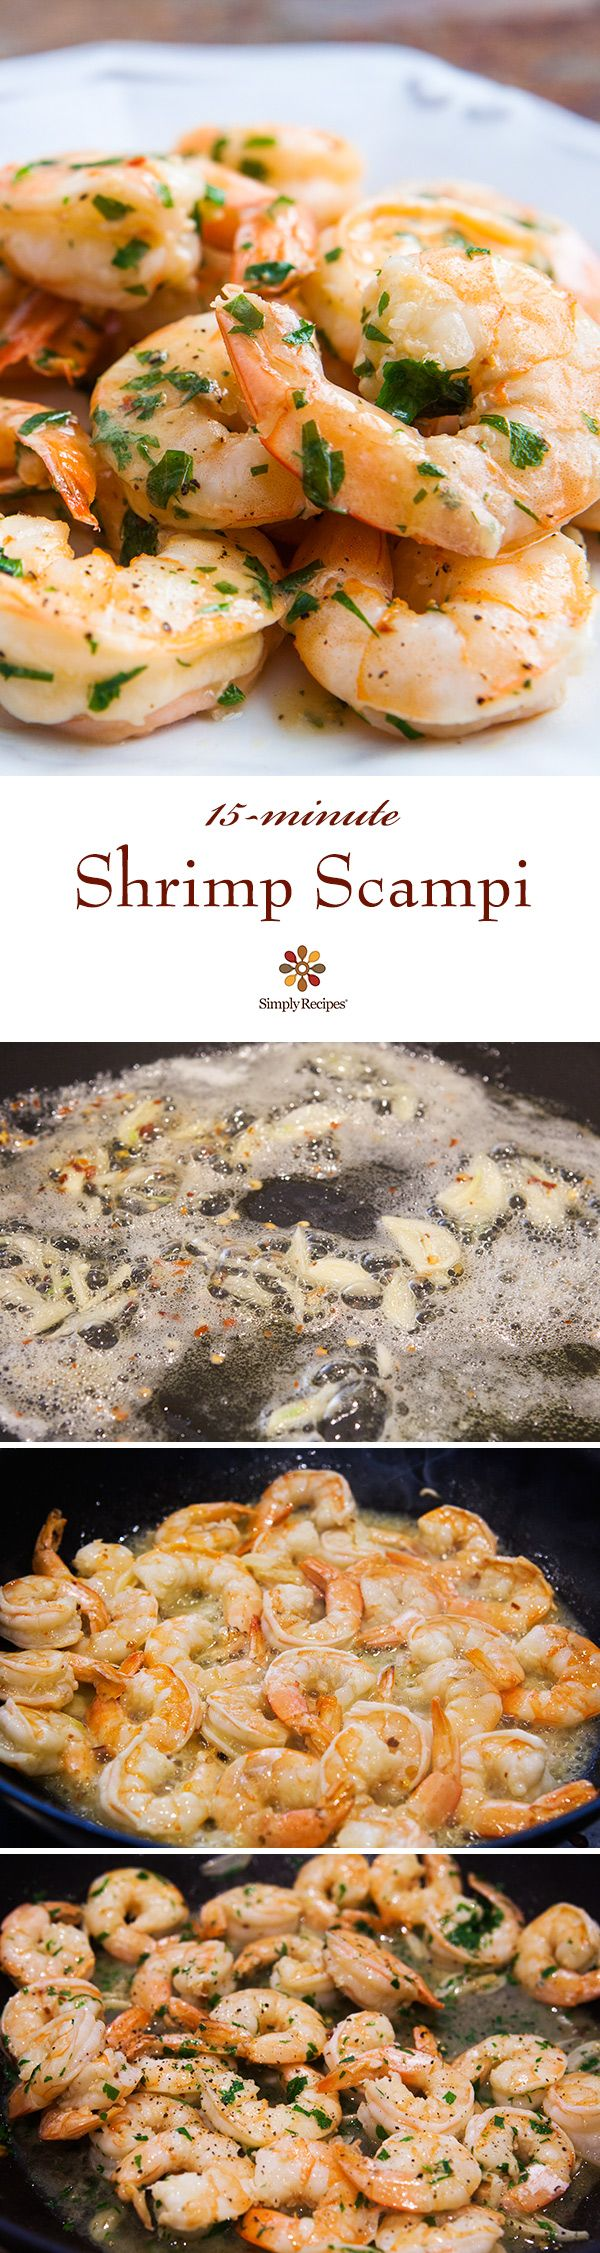 Shrimp Scampi ~ Quick and easy shrimp scampi, shrimp sautéed with garlic in…